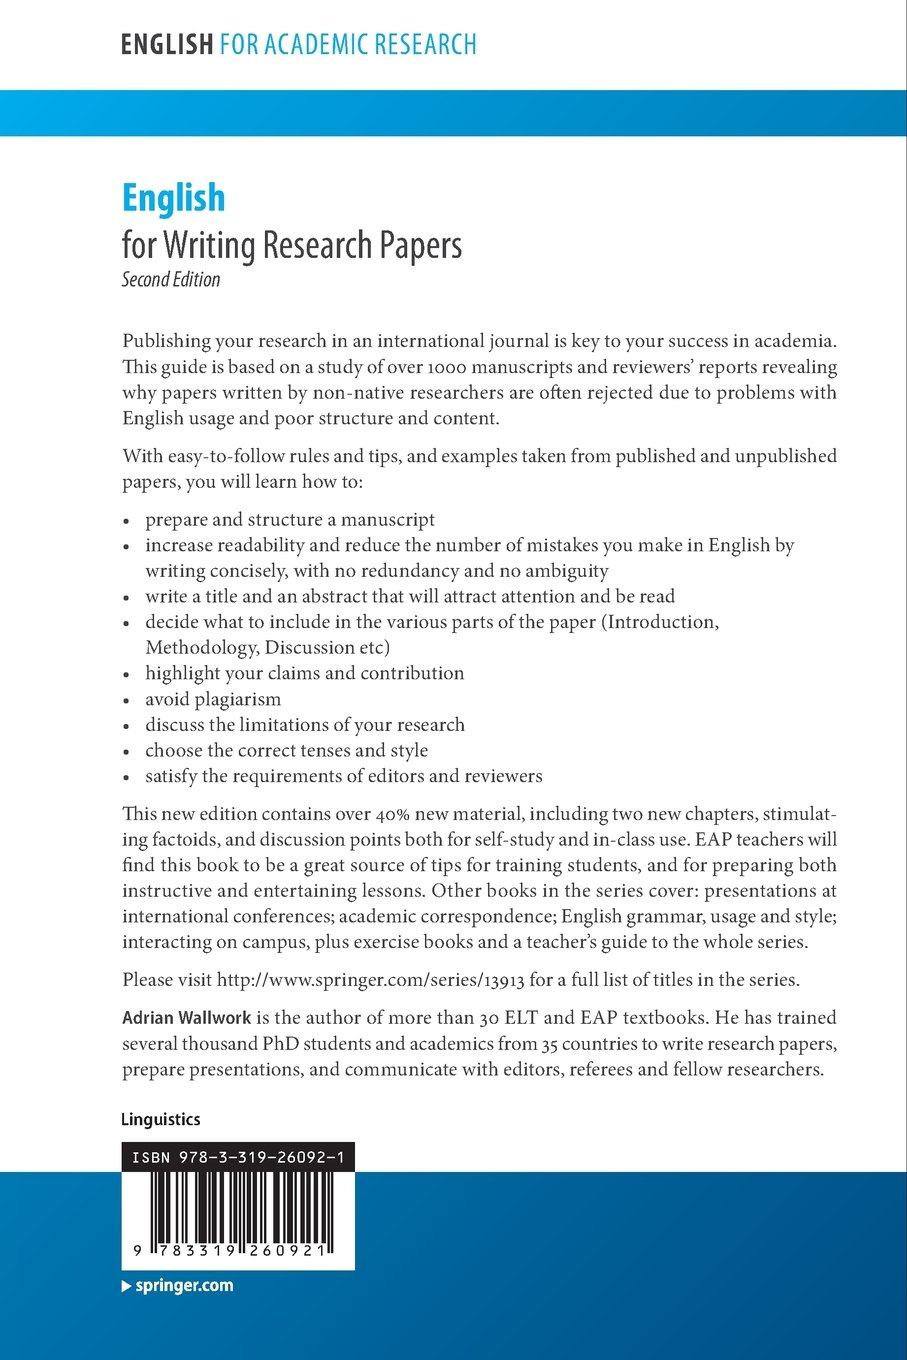 001 71eexuoeuql Research Paper English For Writing Papers Awesome Springer Pdf Useful Phrases - Full